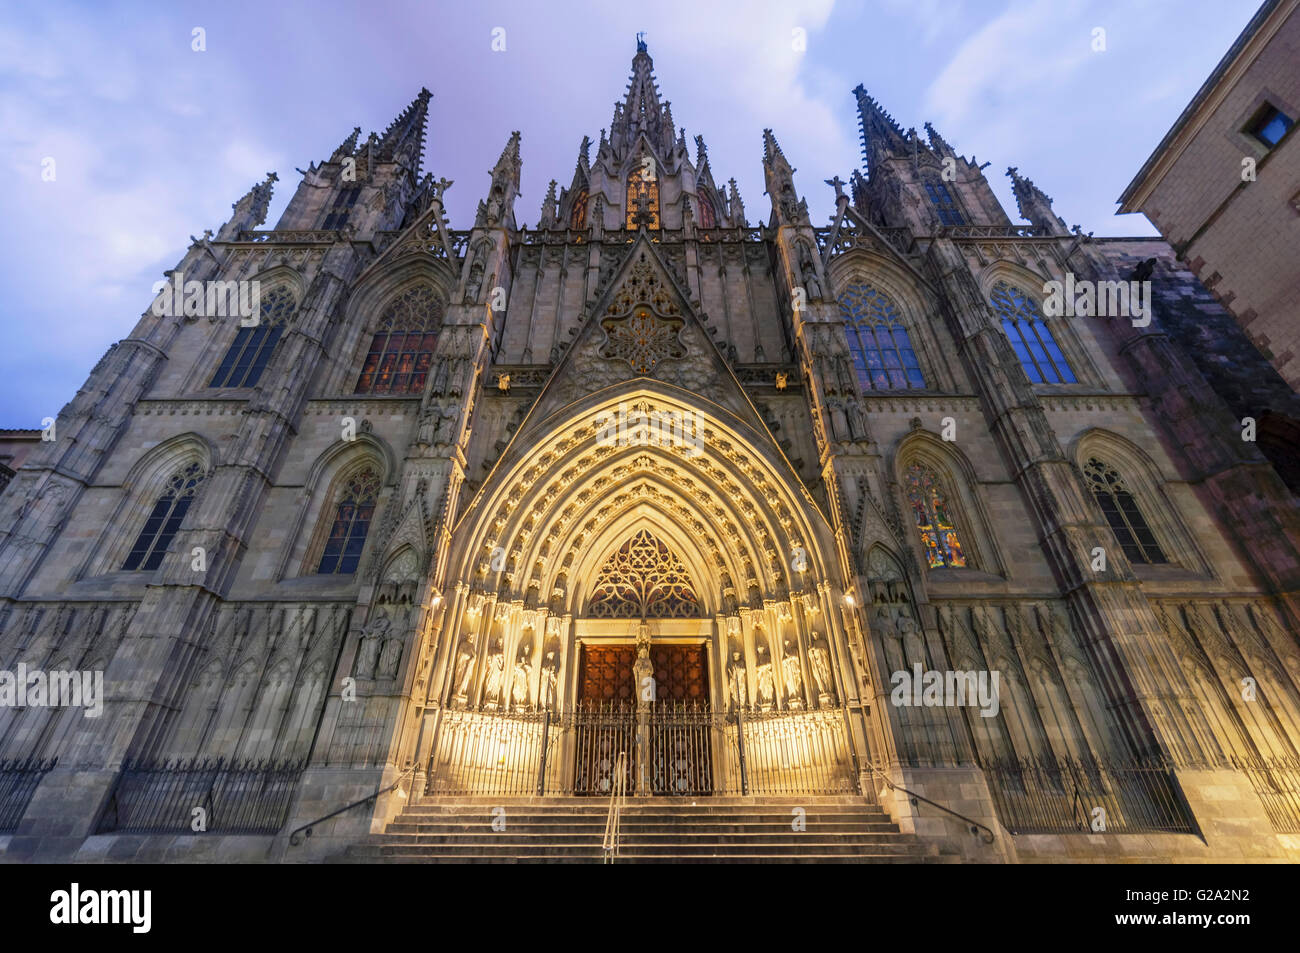 The Gothic cathedral in Barri Gotic, Barcelona, Spain - Stock Image